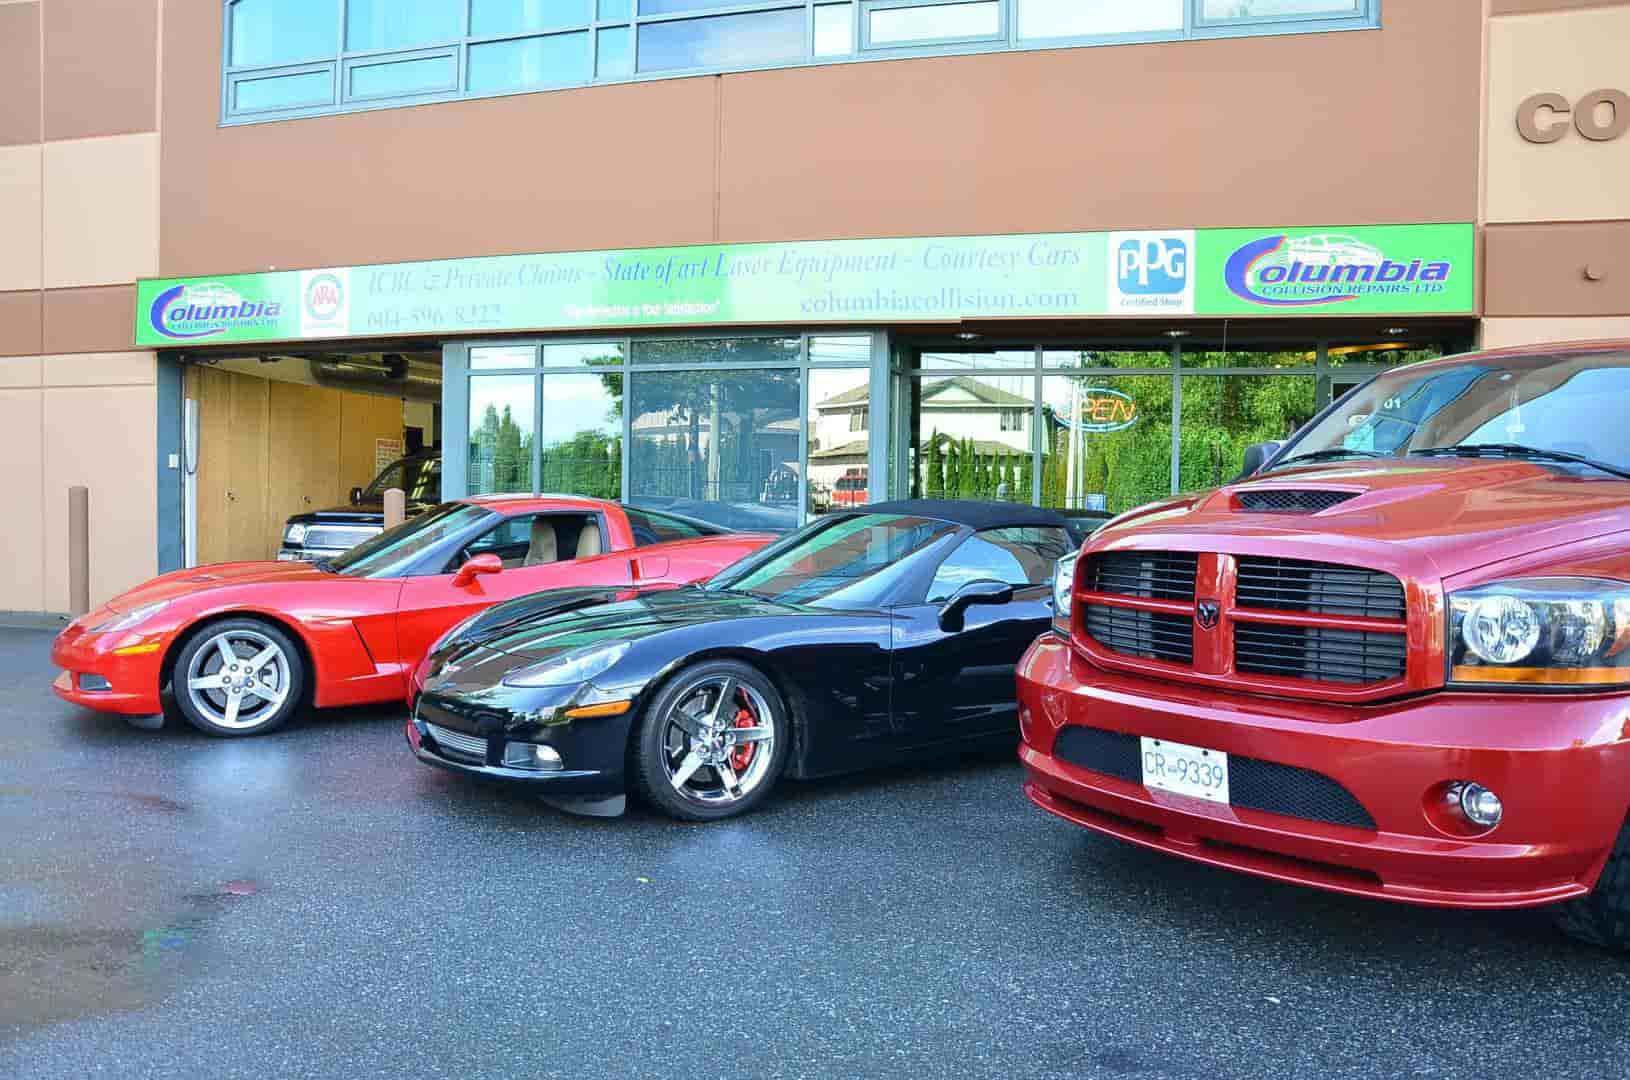 Drive-Thru Services for Your Automotive Repairs in Surrey, BC